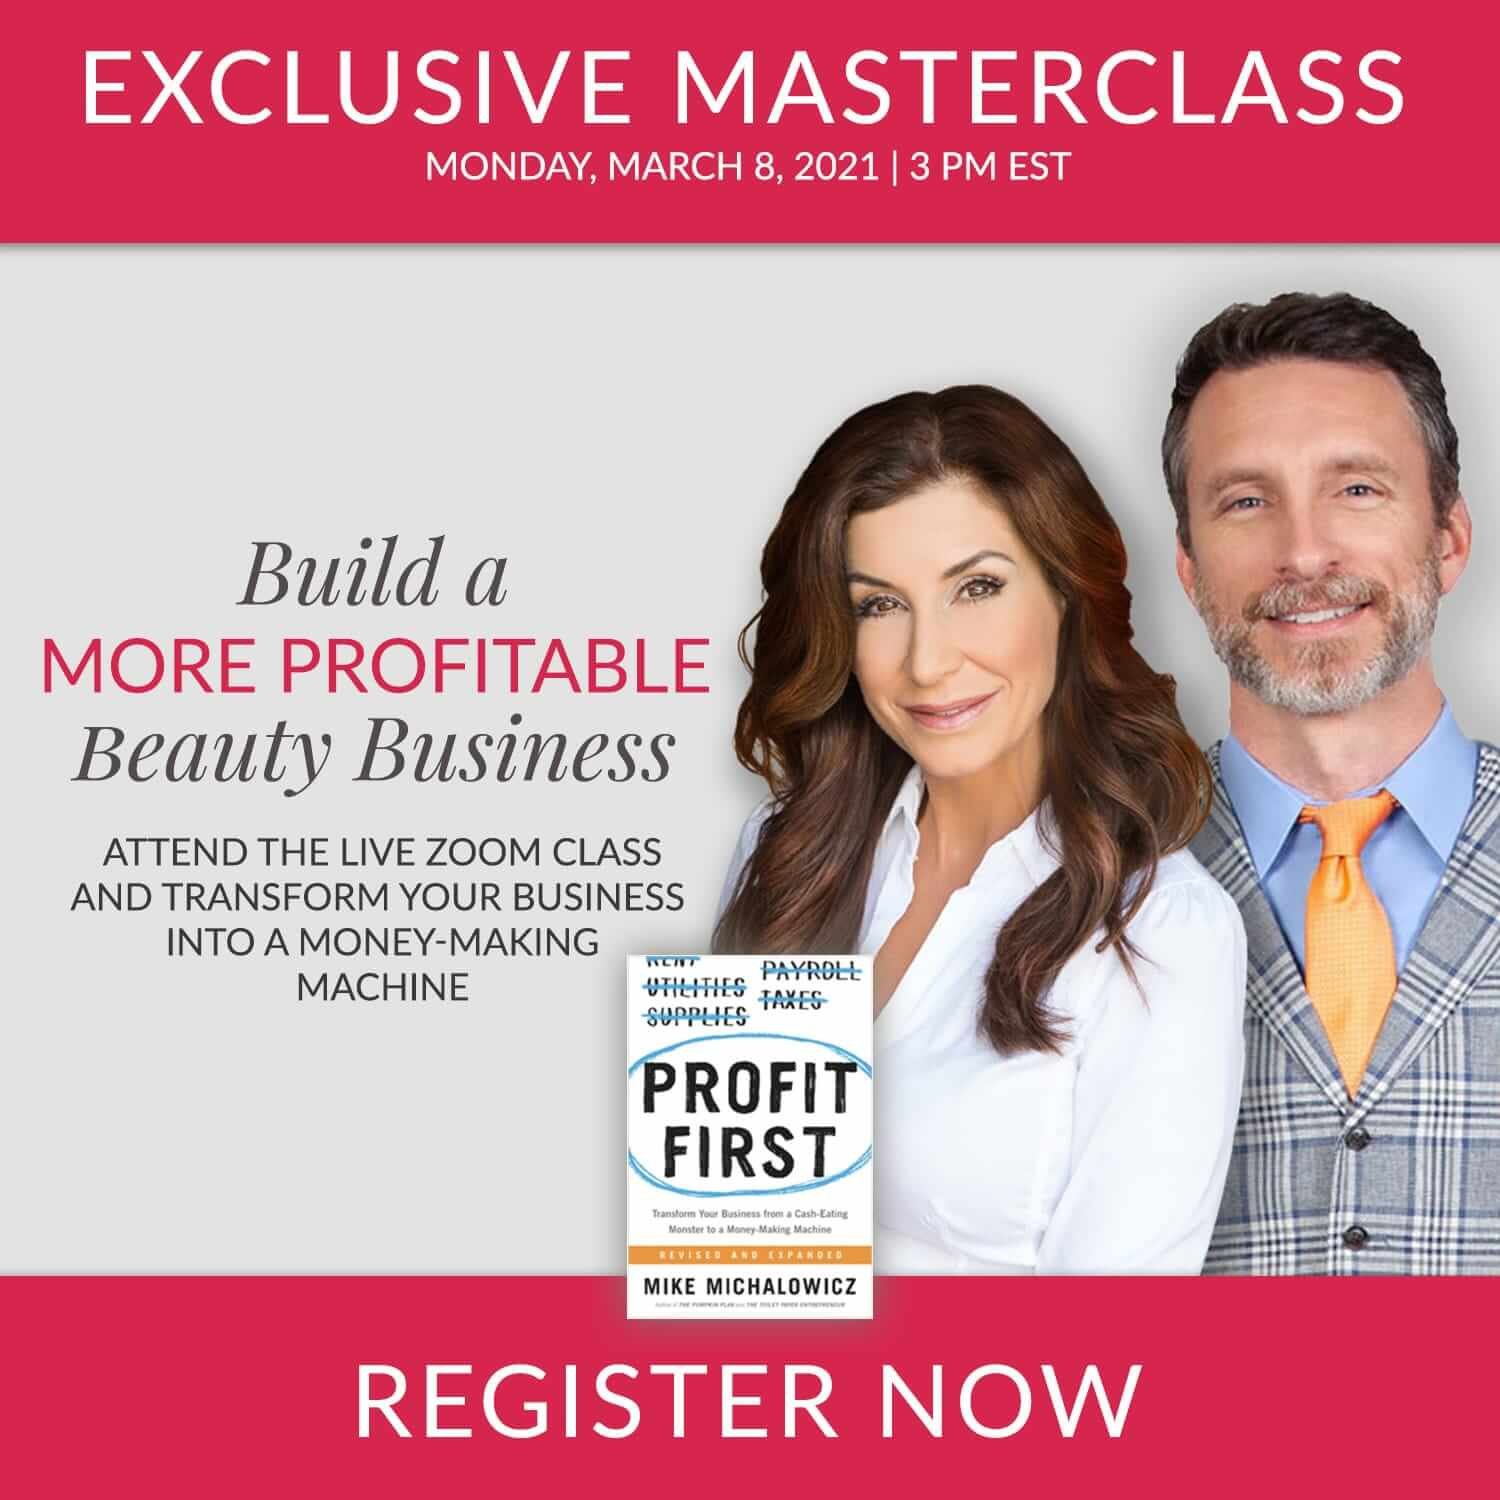 Esthetician Inner Circle Masterclass - Profit First March 8th, 2021